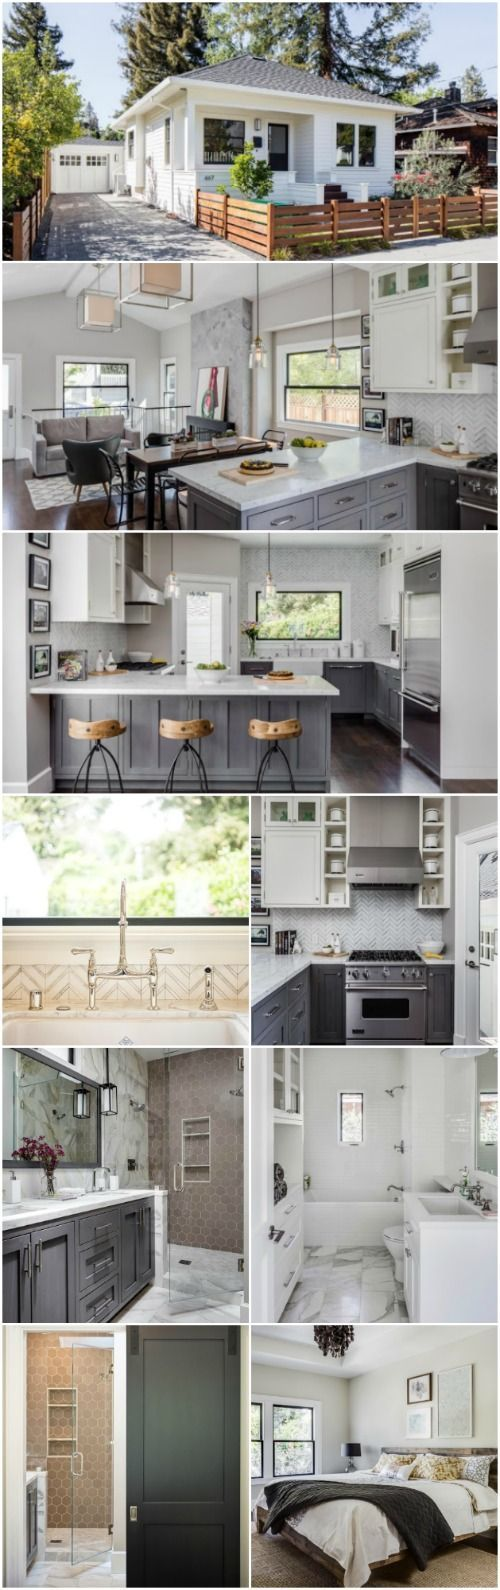 Best 25 tiny homes interior ideas on pinterest tiny for Tiny house blueprint maker